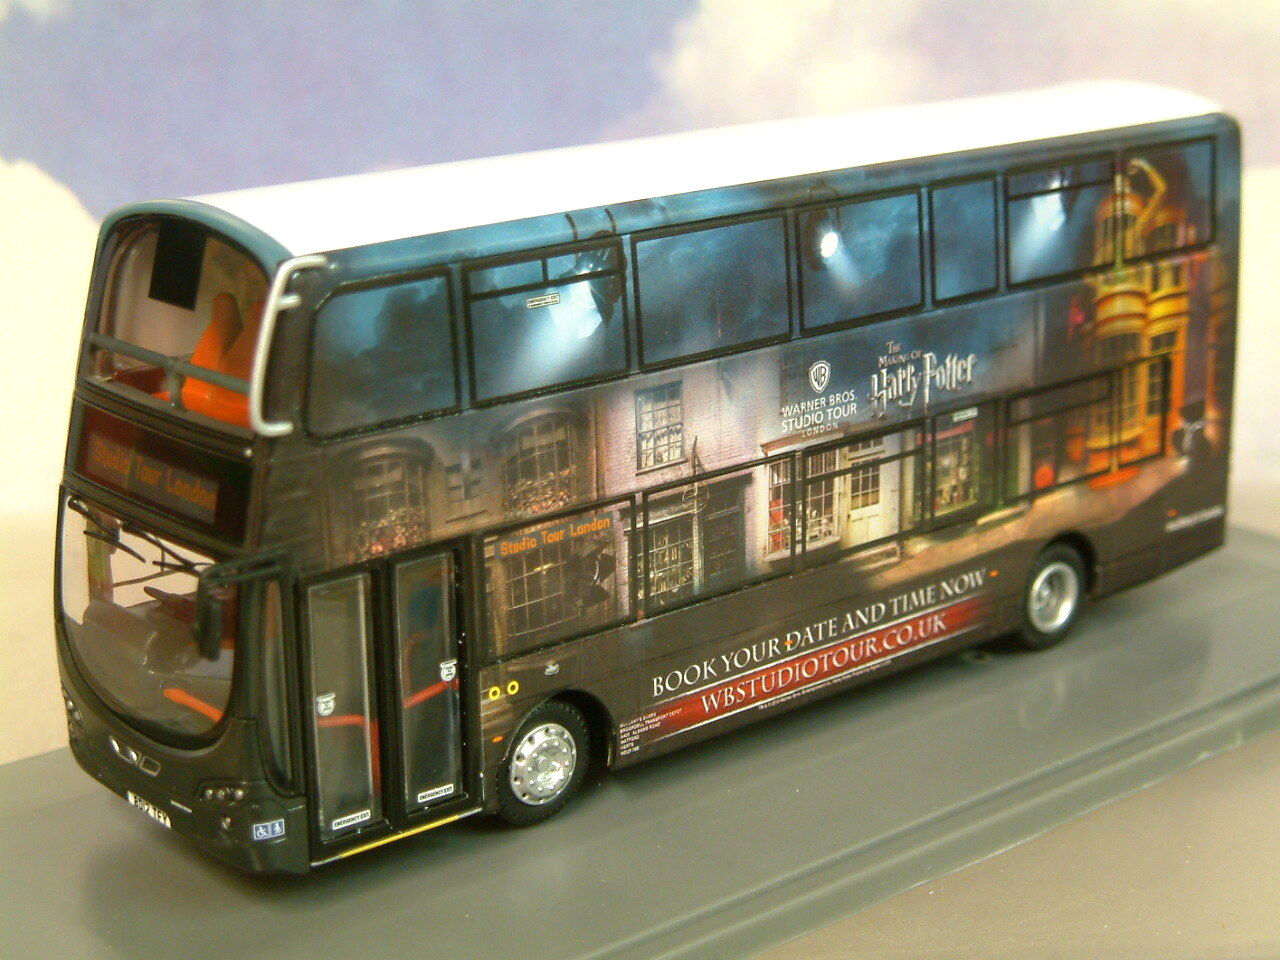 CORGI 1 76 WRIGHT ECLIPSE GEMINI 2 HARRY POTTER STUDIO TOUR SHUTTLE BUS OM46511